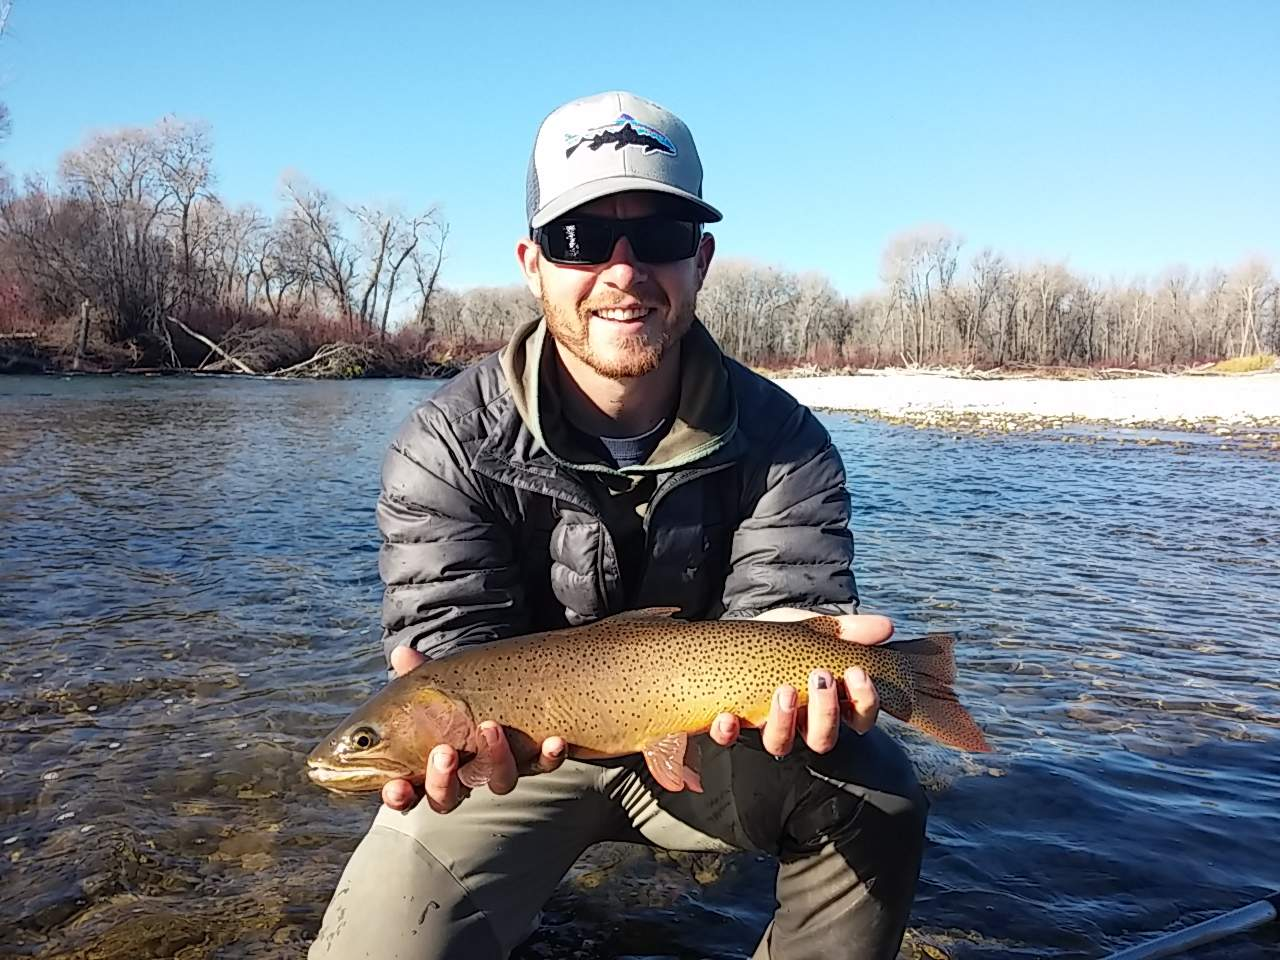 Photo of angler holding large trout.